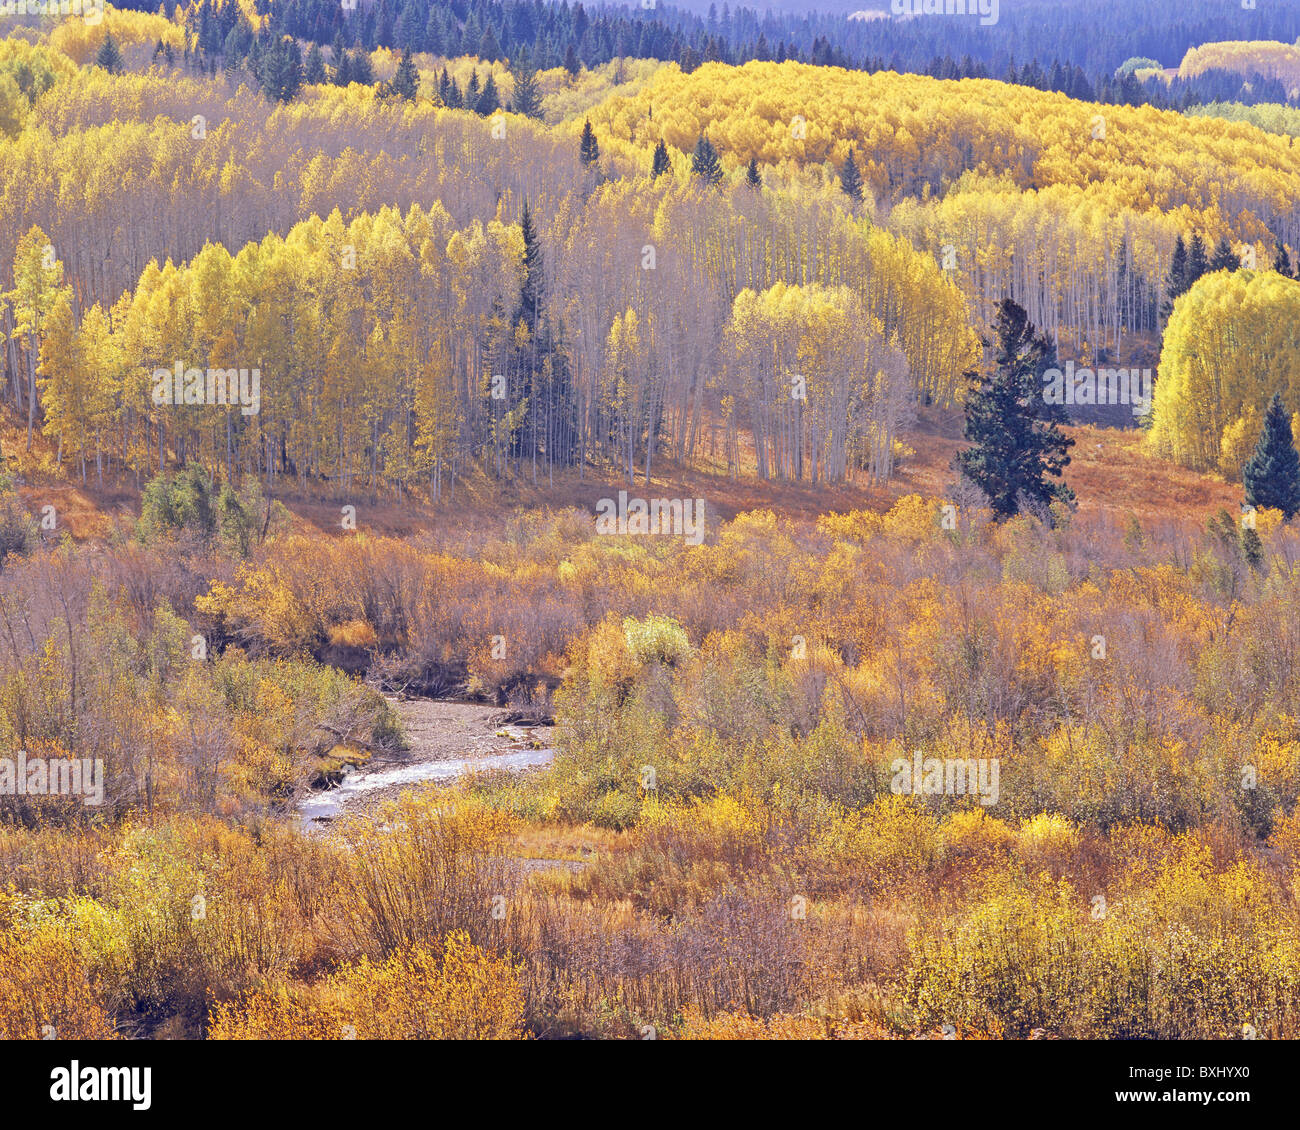 Mountain meadow and aspen groves in autumn, Kebler Pass Road west of Crested Butte, Gunnison National Forest, Colorado, Stock Photo